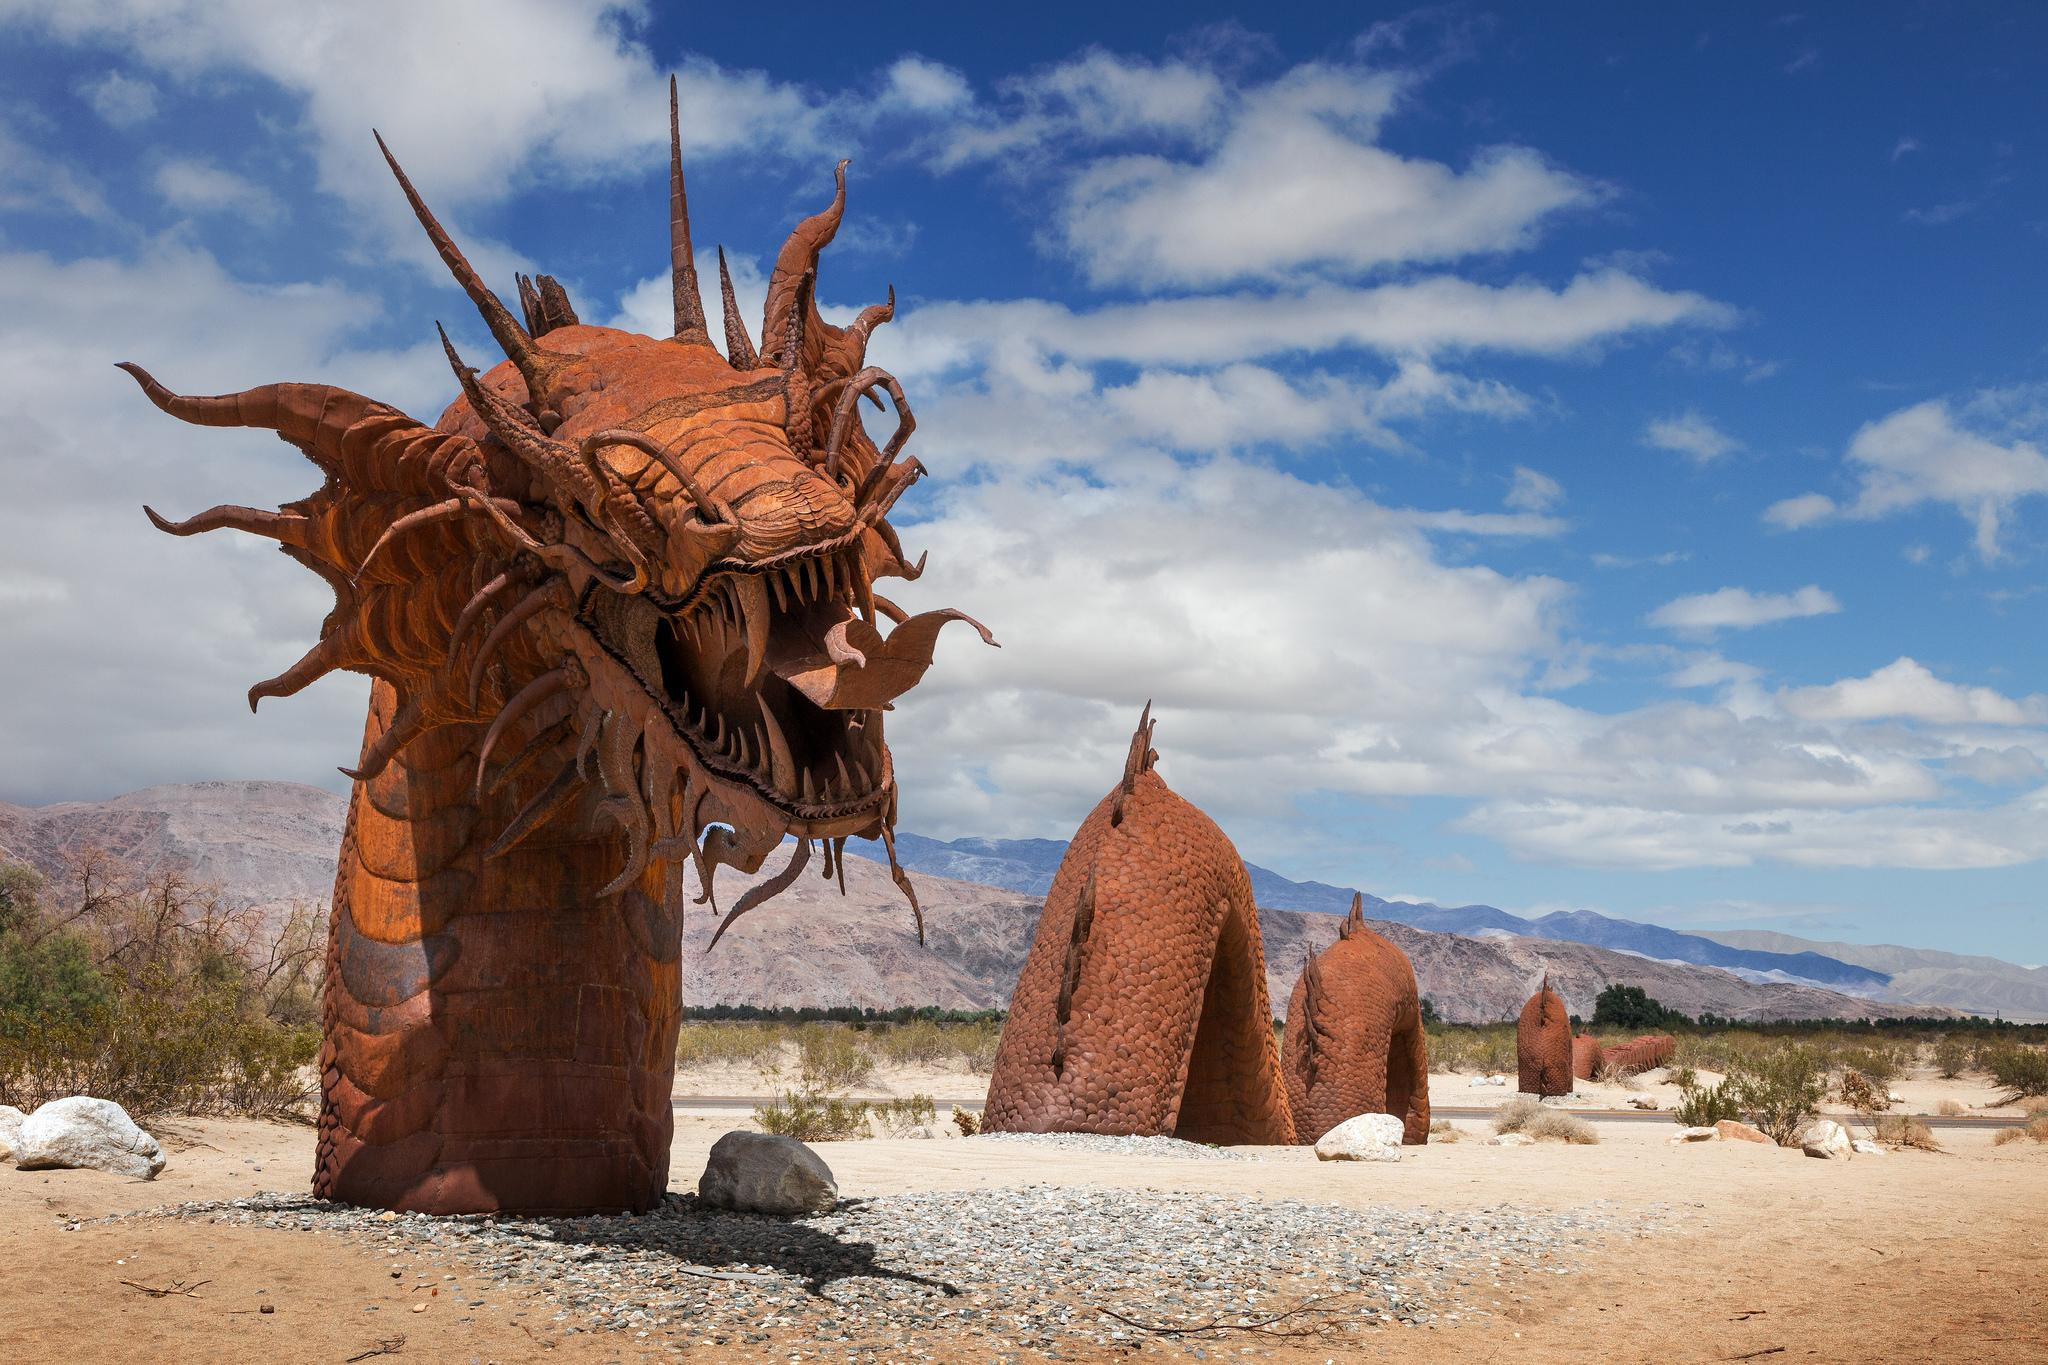 Обои Боррего-Спрингс, Калифорния, Serpent Sculpture, Borrego Springs